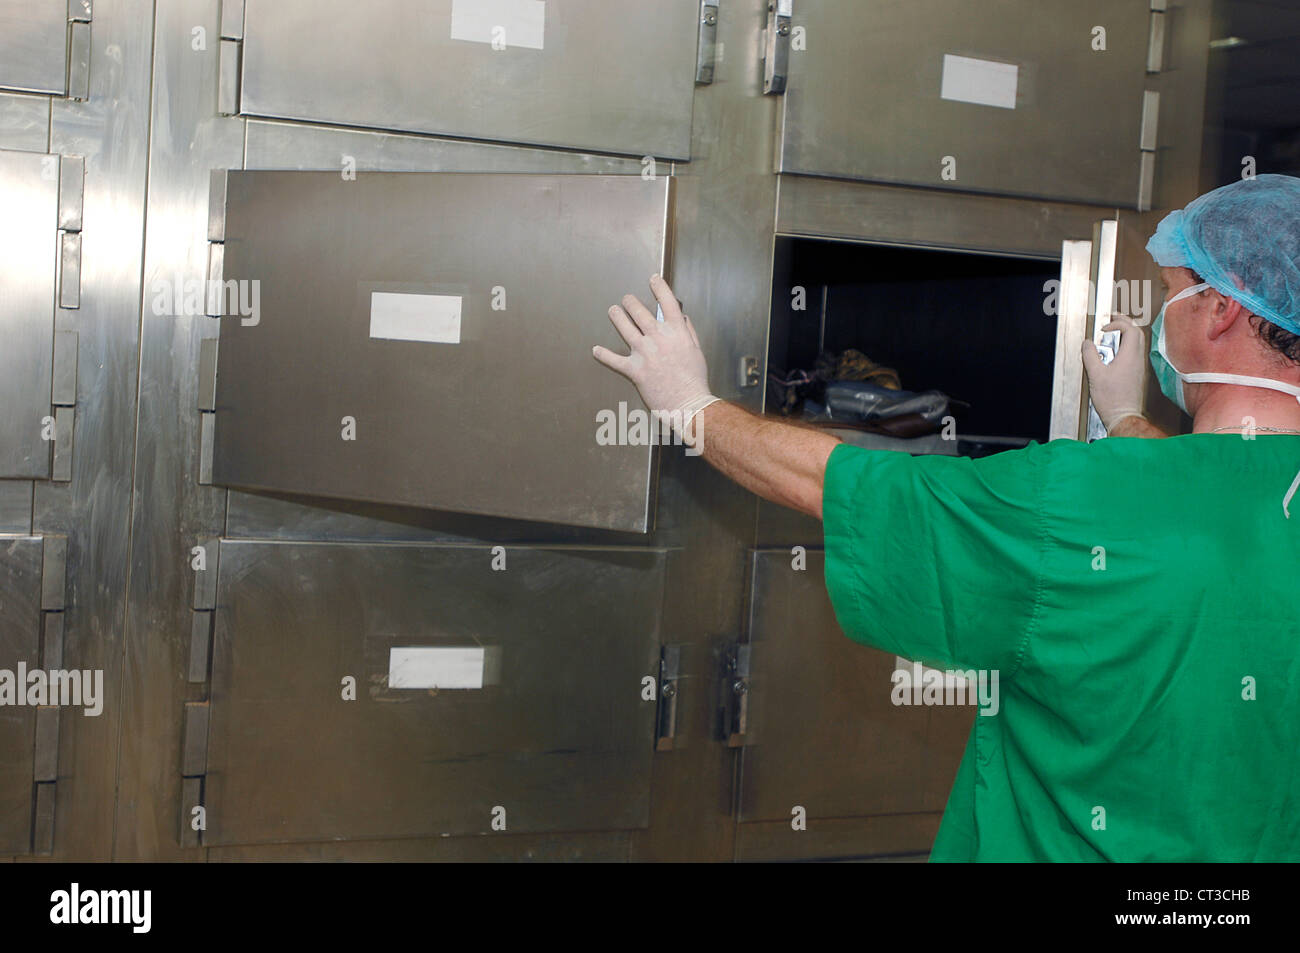 A mortuary technician removes a human body from a cold storage facility. - Stock Image